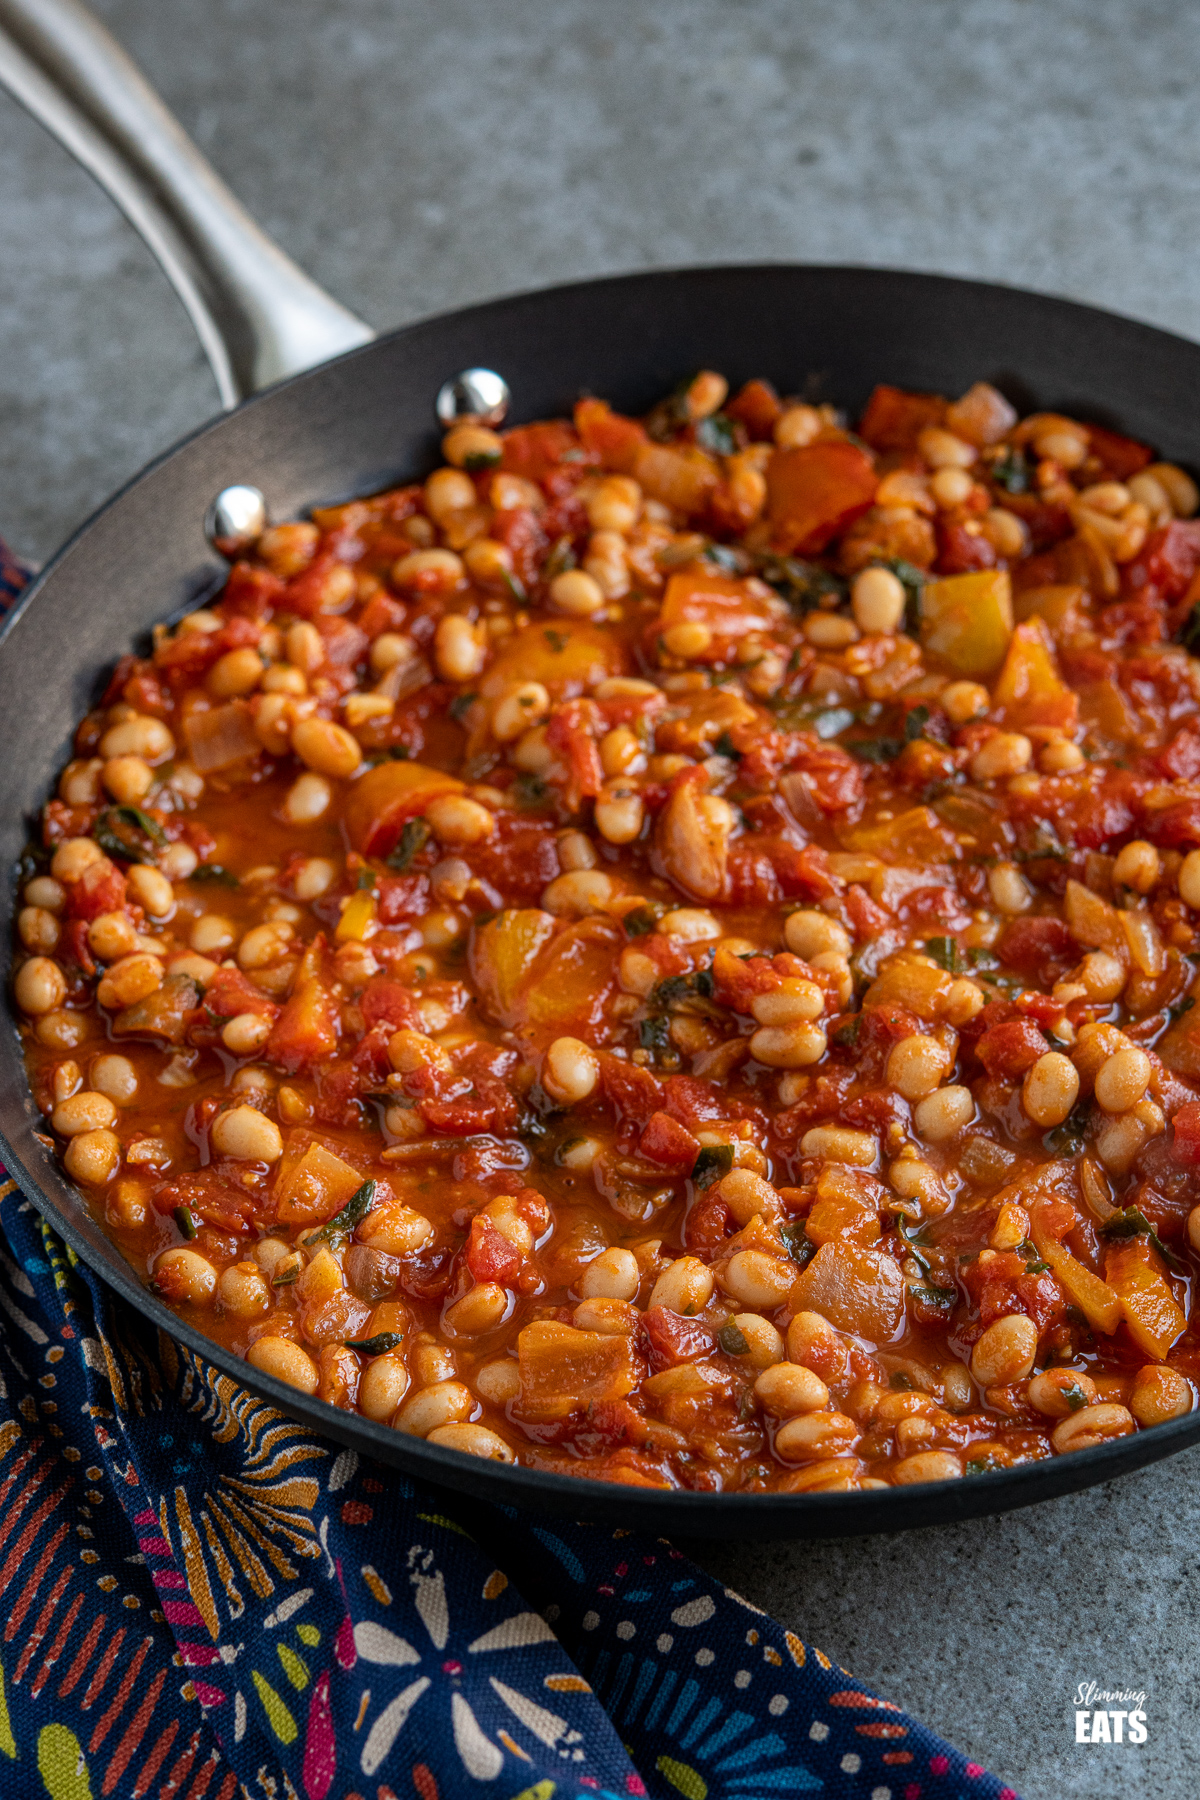 Tomatoes and White Beans in a black frying pan